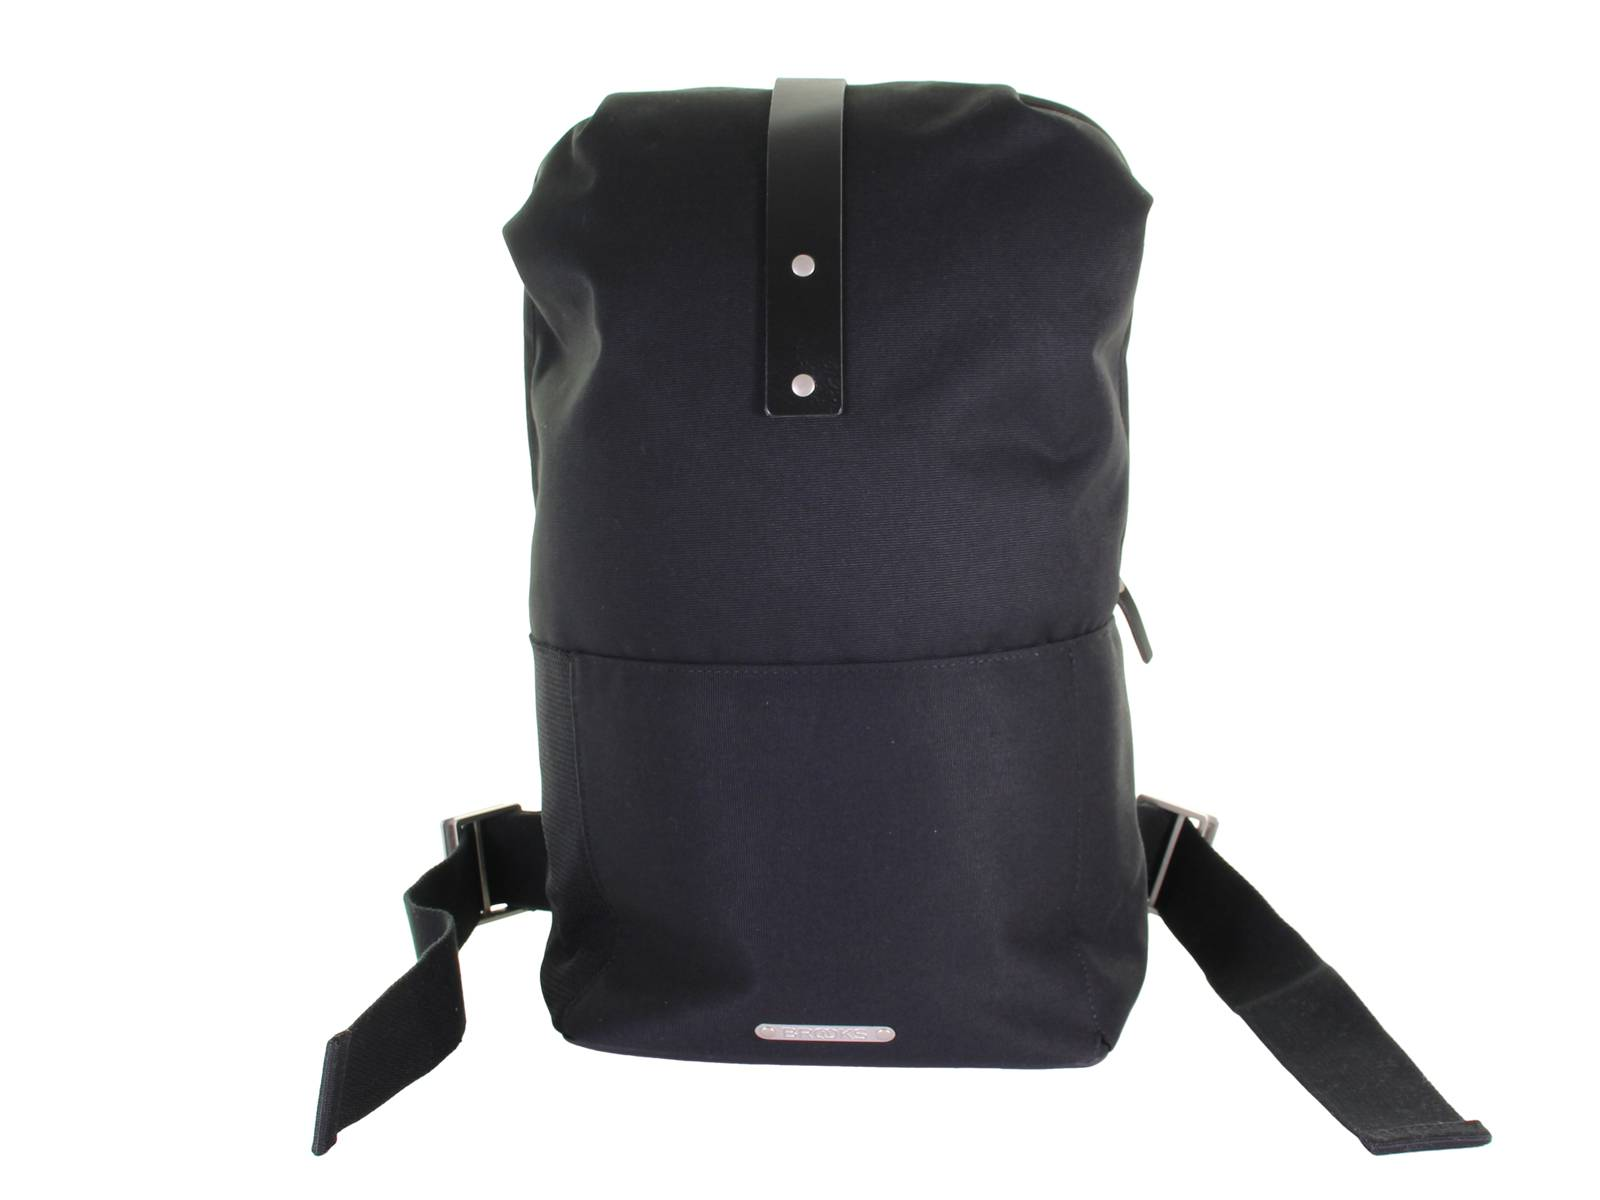 brooks fahrradtasche rucksack dalston m schwarz fahrradkomfort. Black Bedroom Furniture Sets. Home Design Ideas